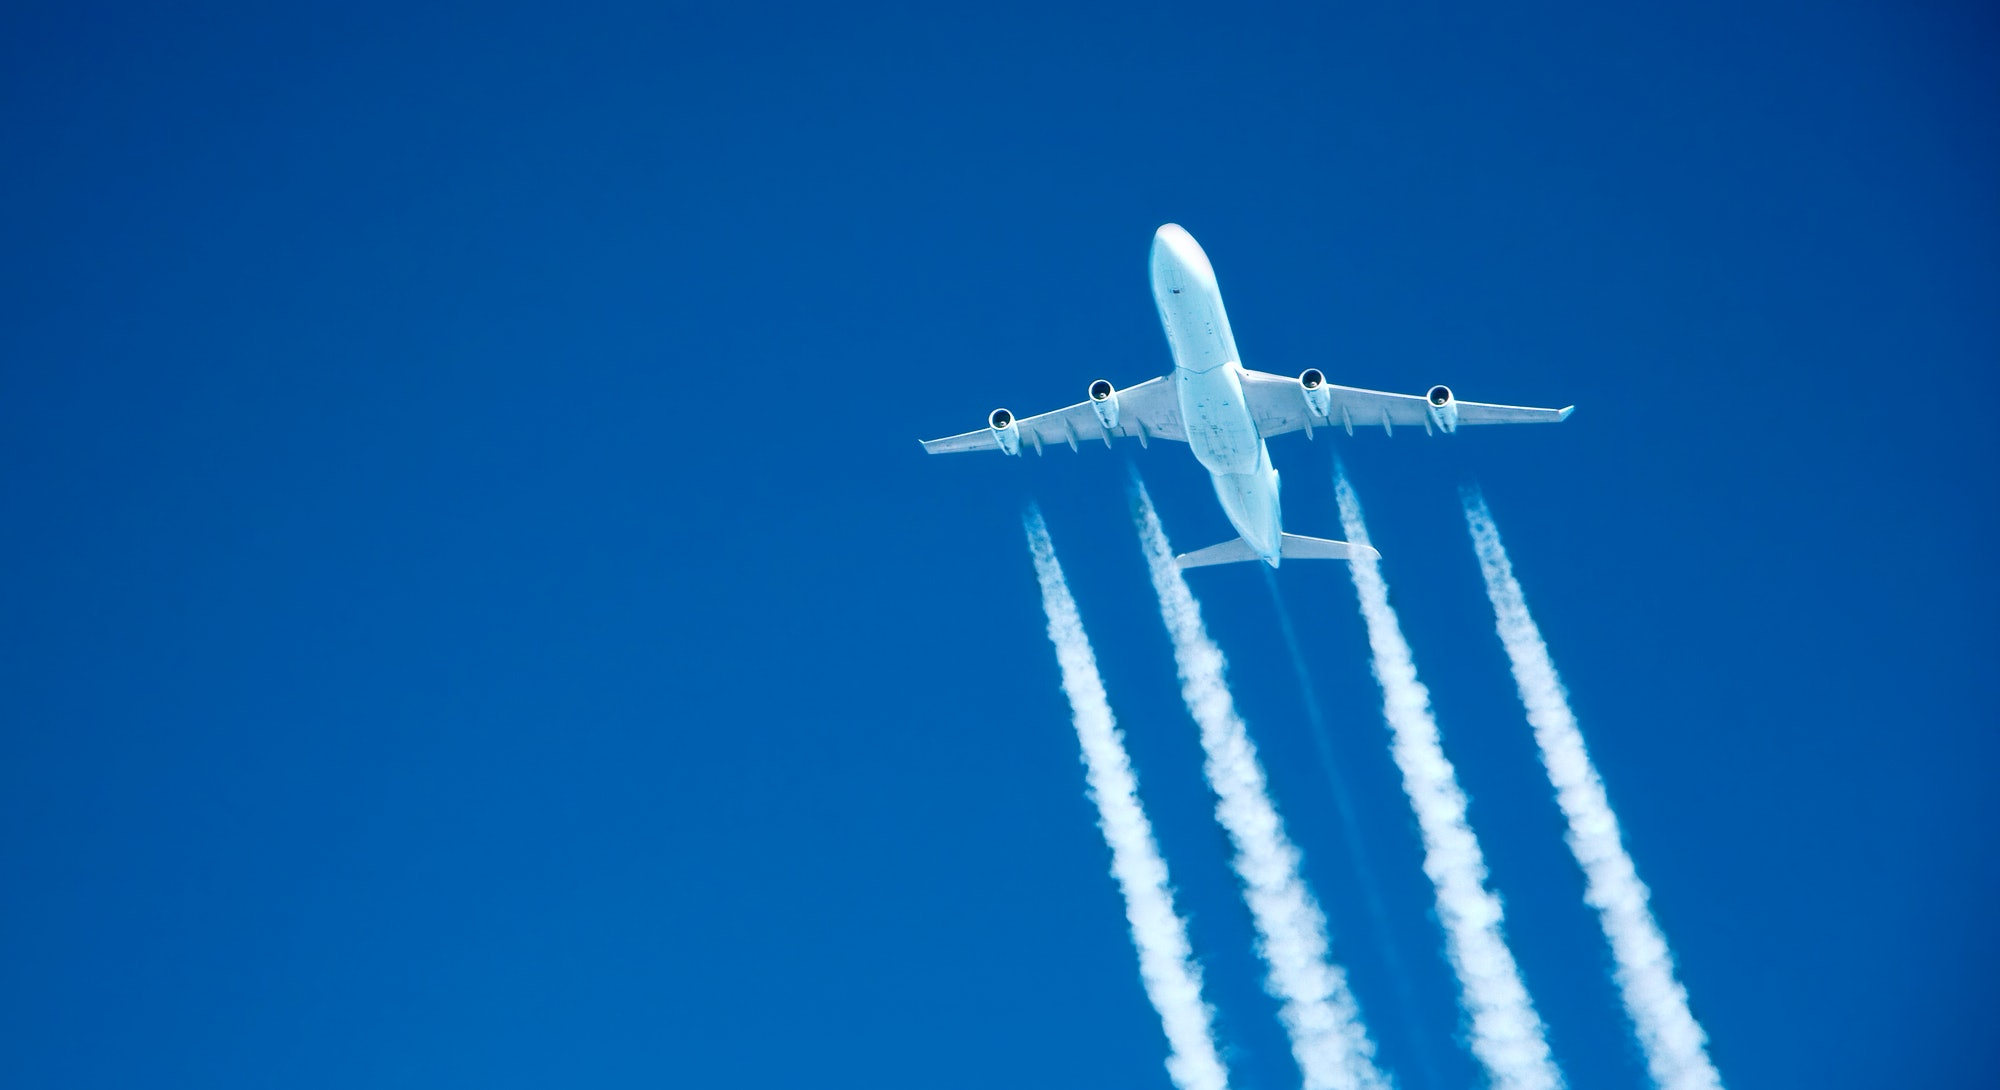 Airplaine flying with jet stream of pollution